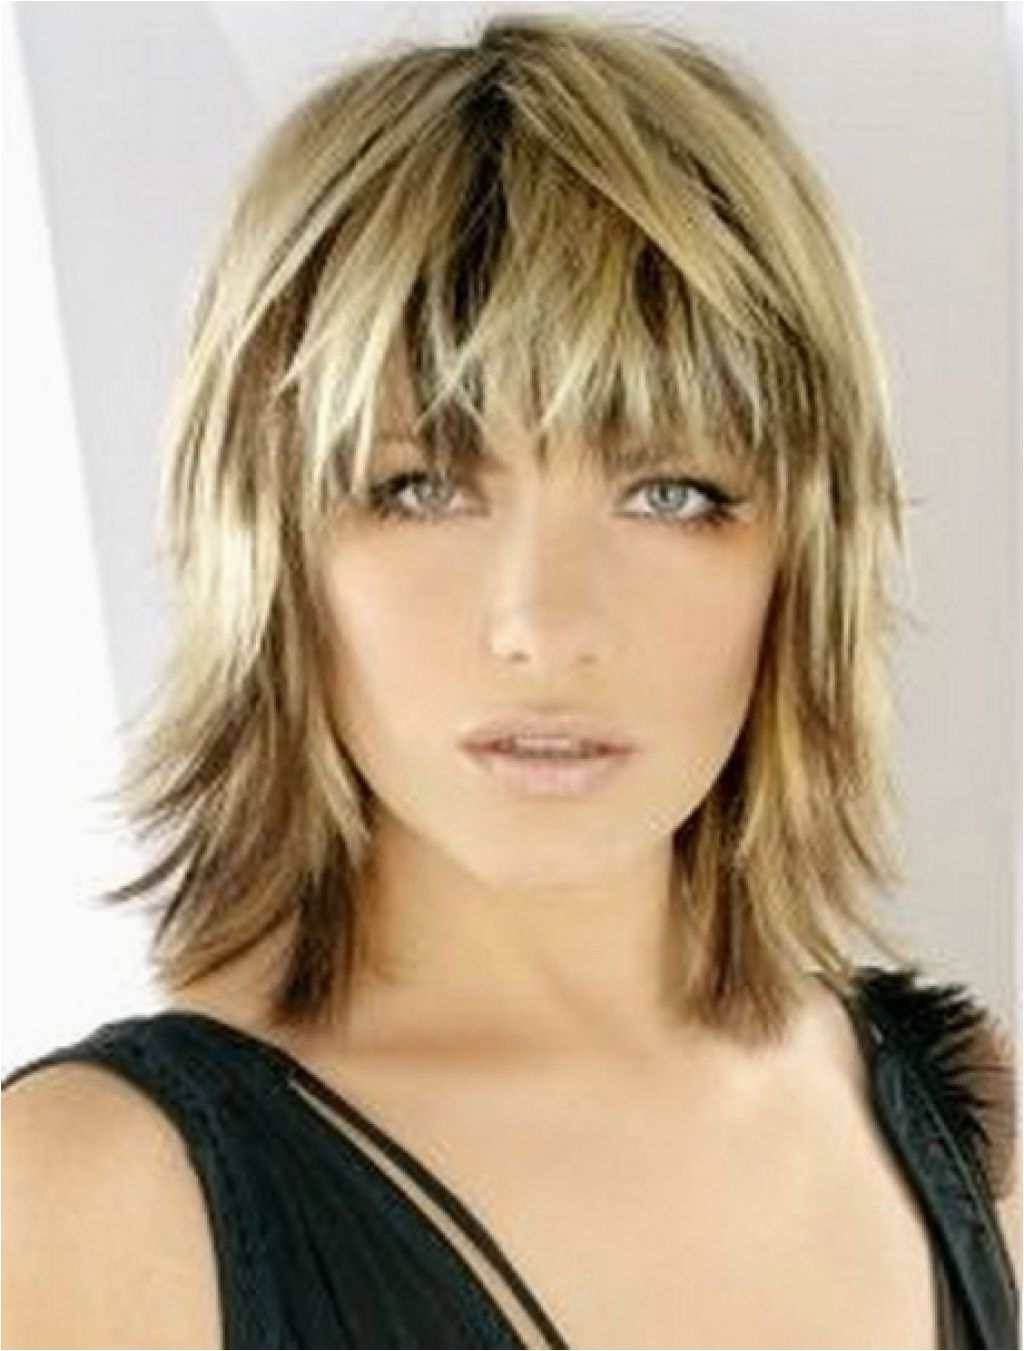 Shaggy Layered Hairstyles Bestof 30 Medium Length Shag Hairstyles Throughout Well Known Layered Shaggy Medium Hairstyles (Gallery 6 of 20)